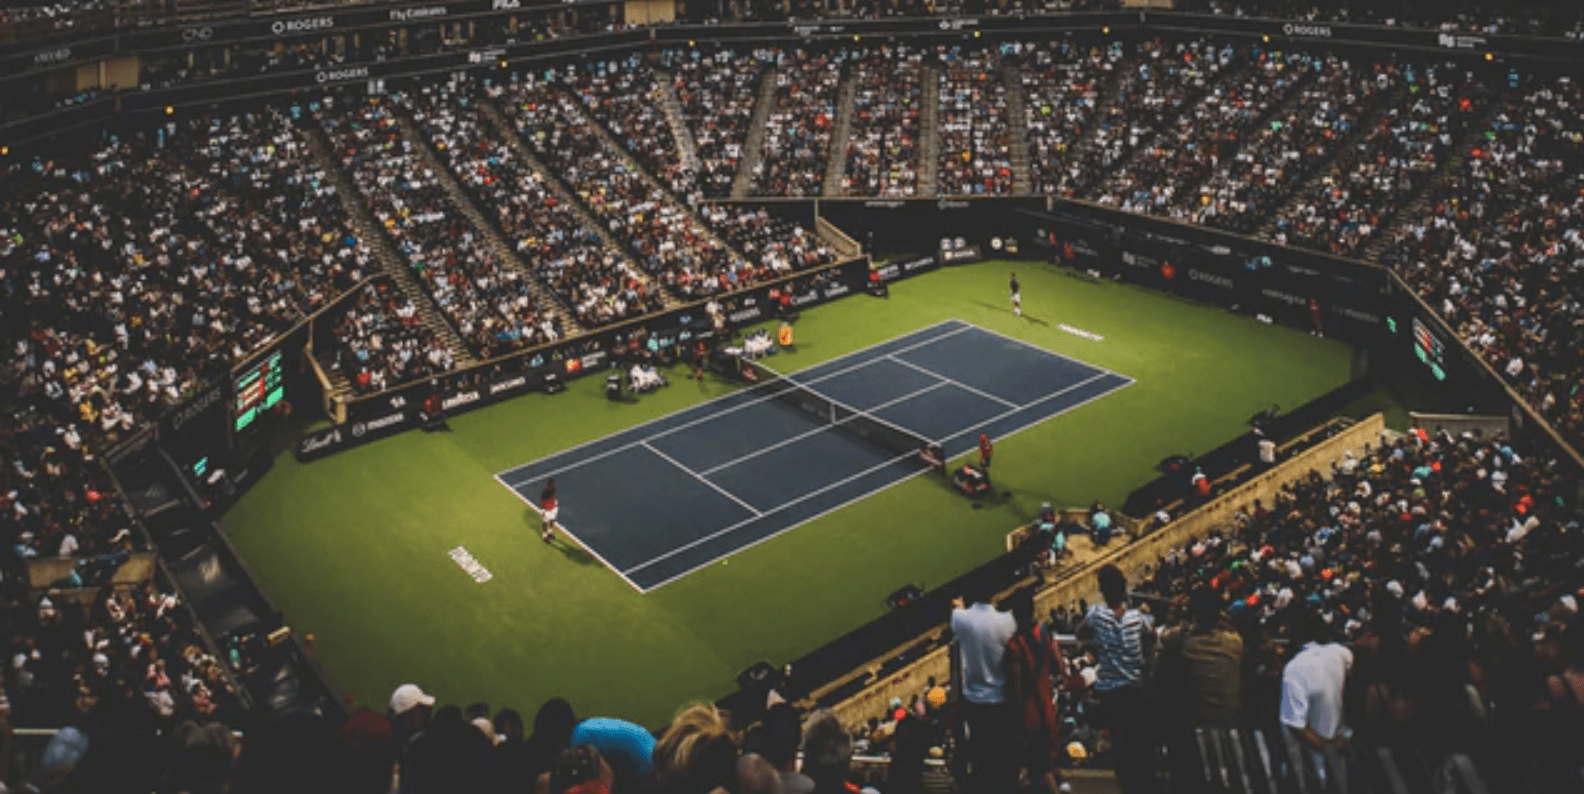 us open tennis fan experience